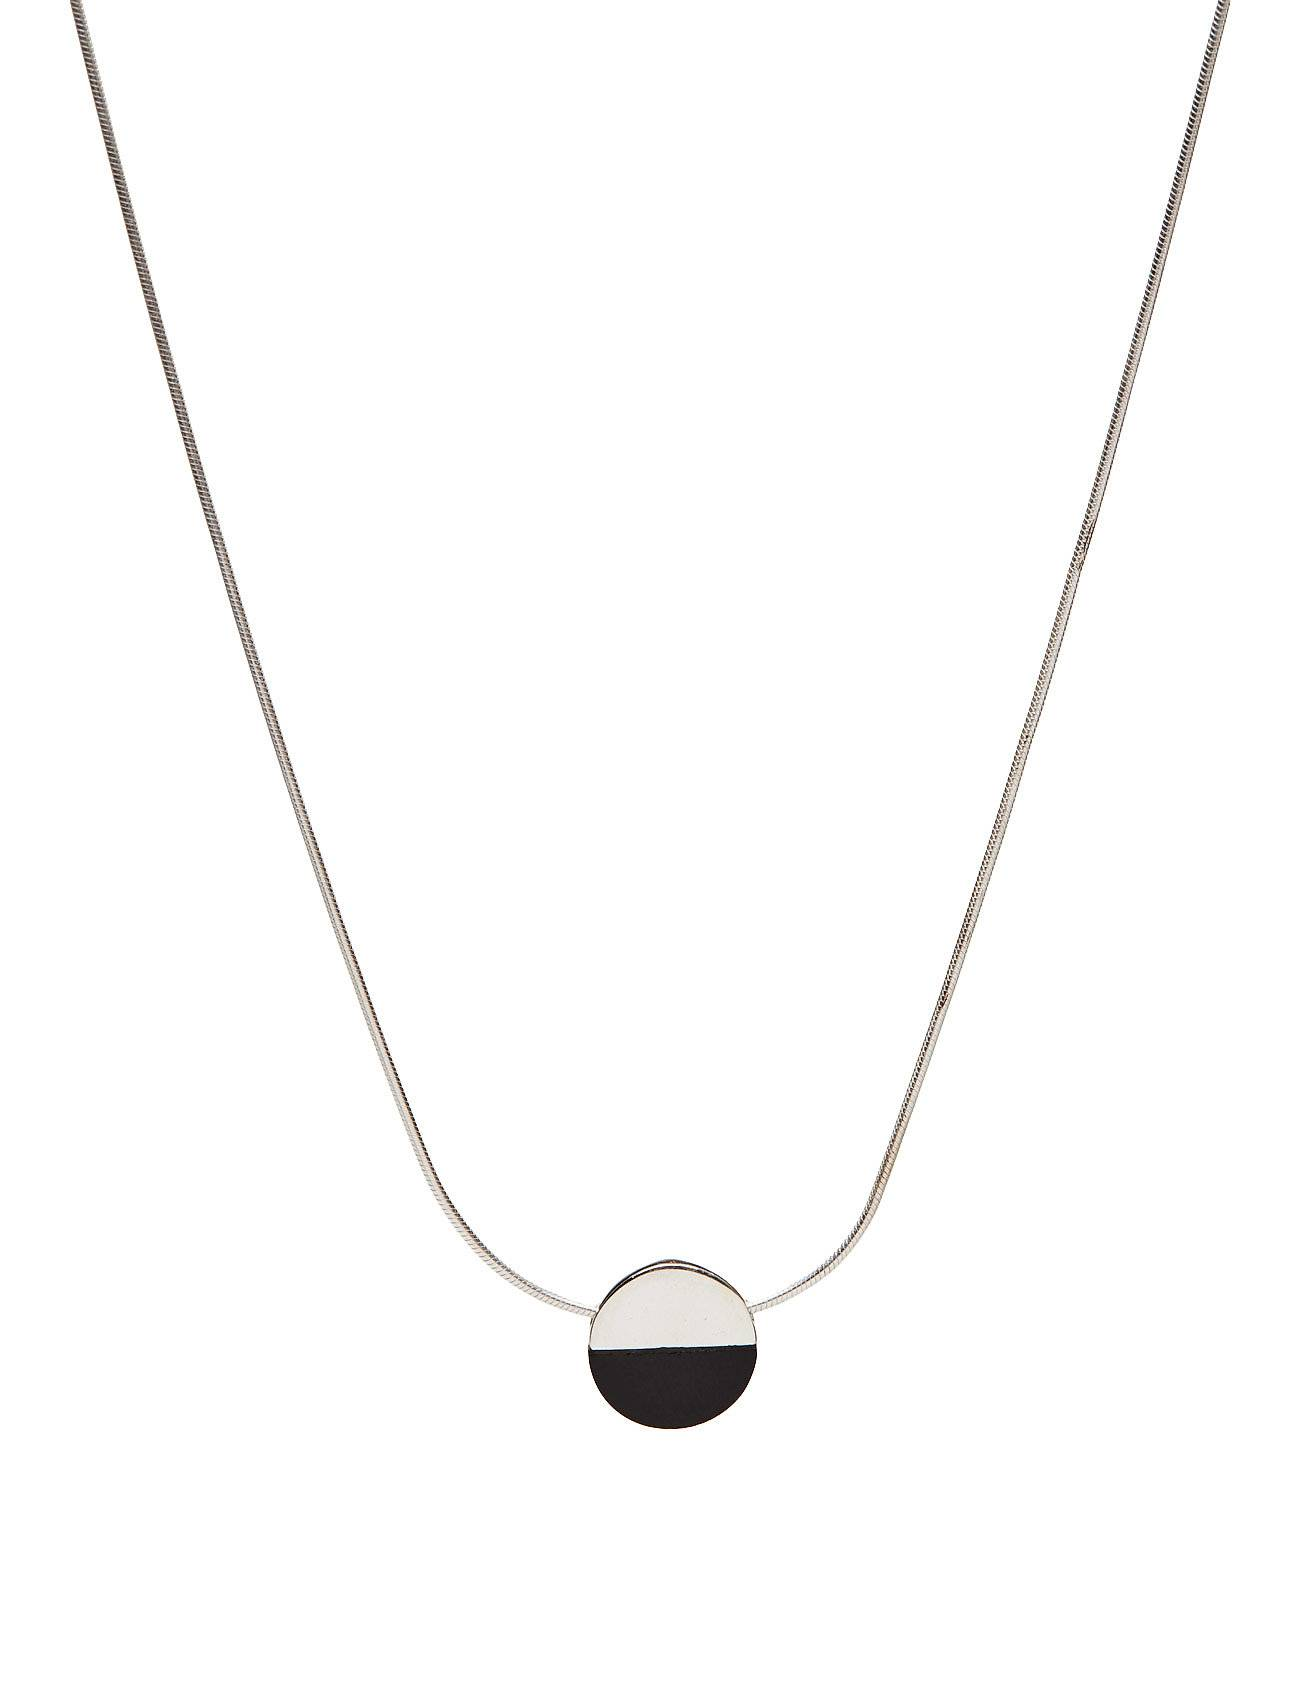 Syster P New Dixxi Necklace Black Onyx